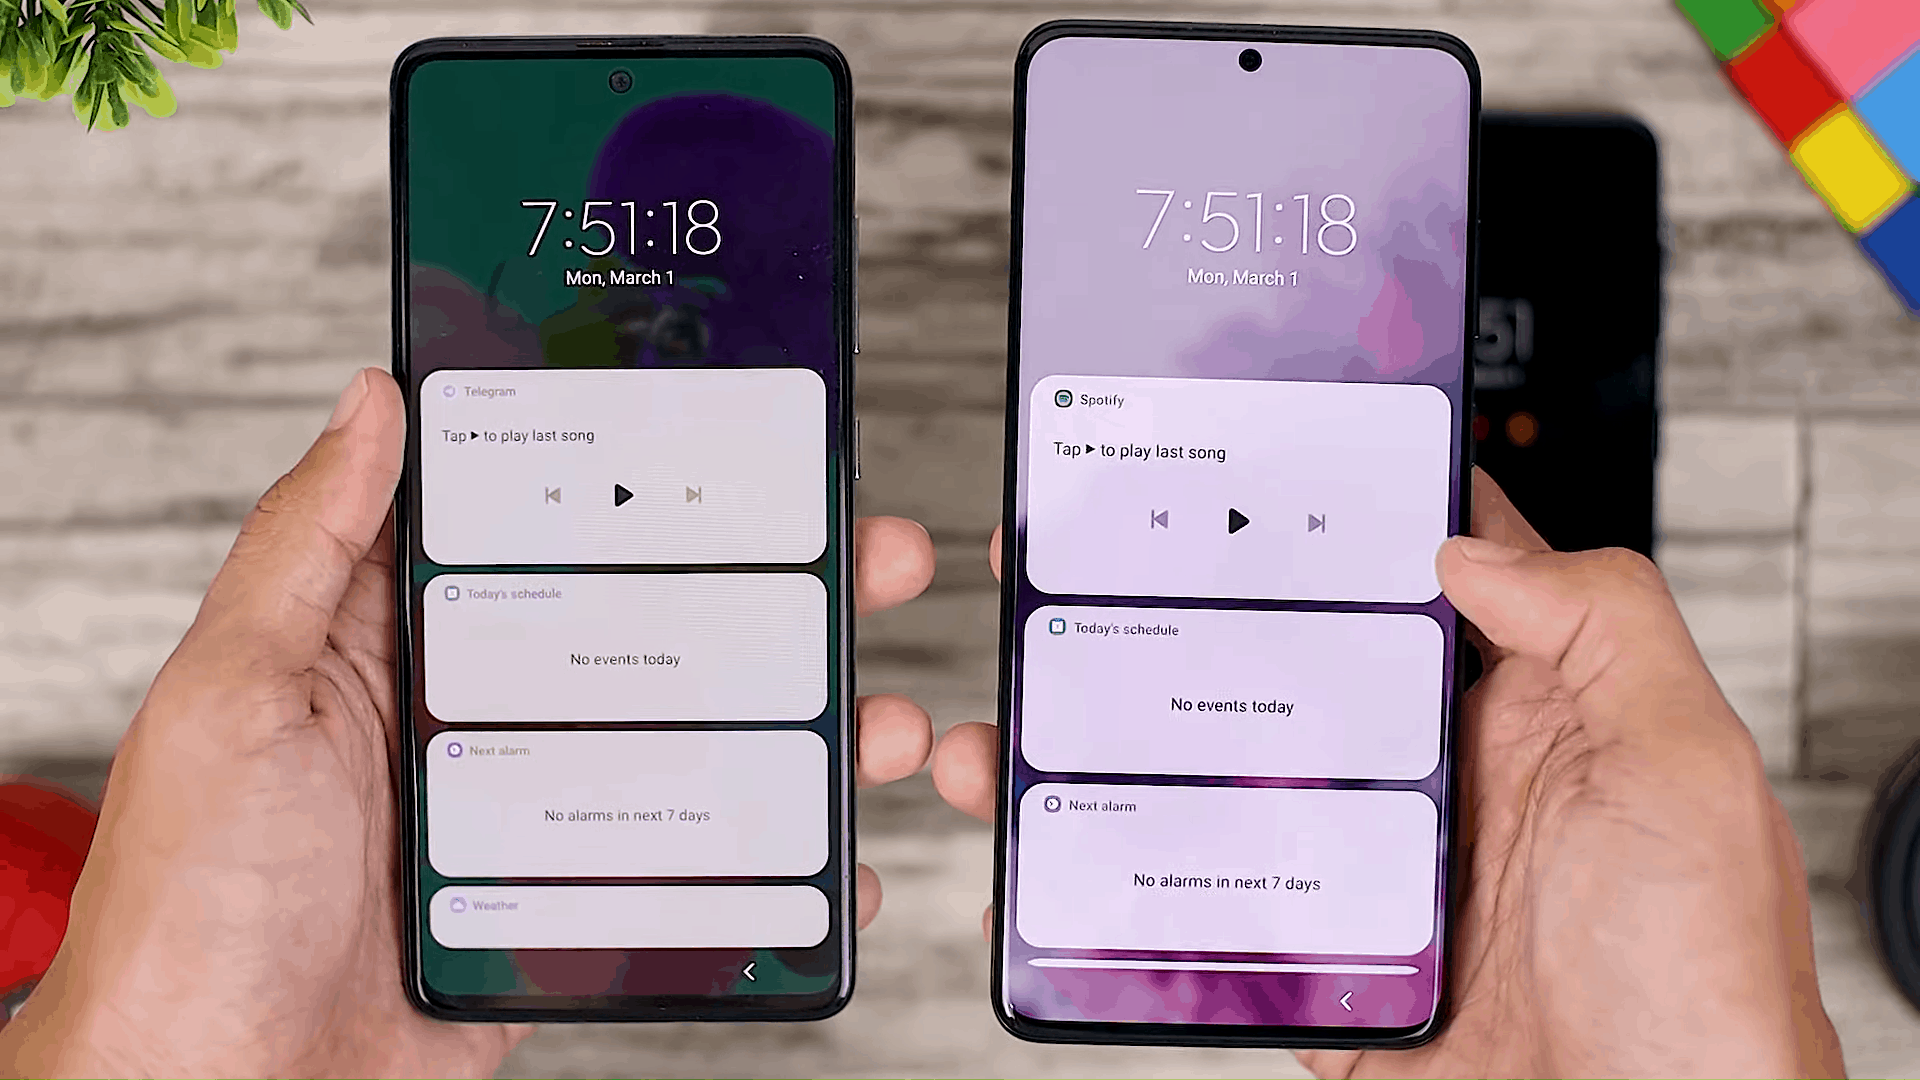 Widget on Lockscreen - One UI 3.0 features of Samsung Galaxy A51 and its comparison with the Galaxy S20+ and One UI 3.1 on the Galaxy S21+